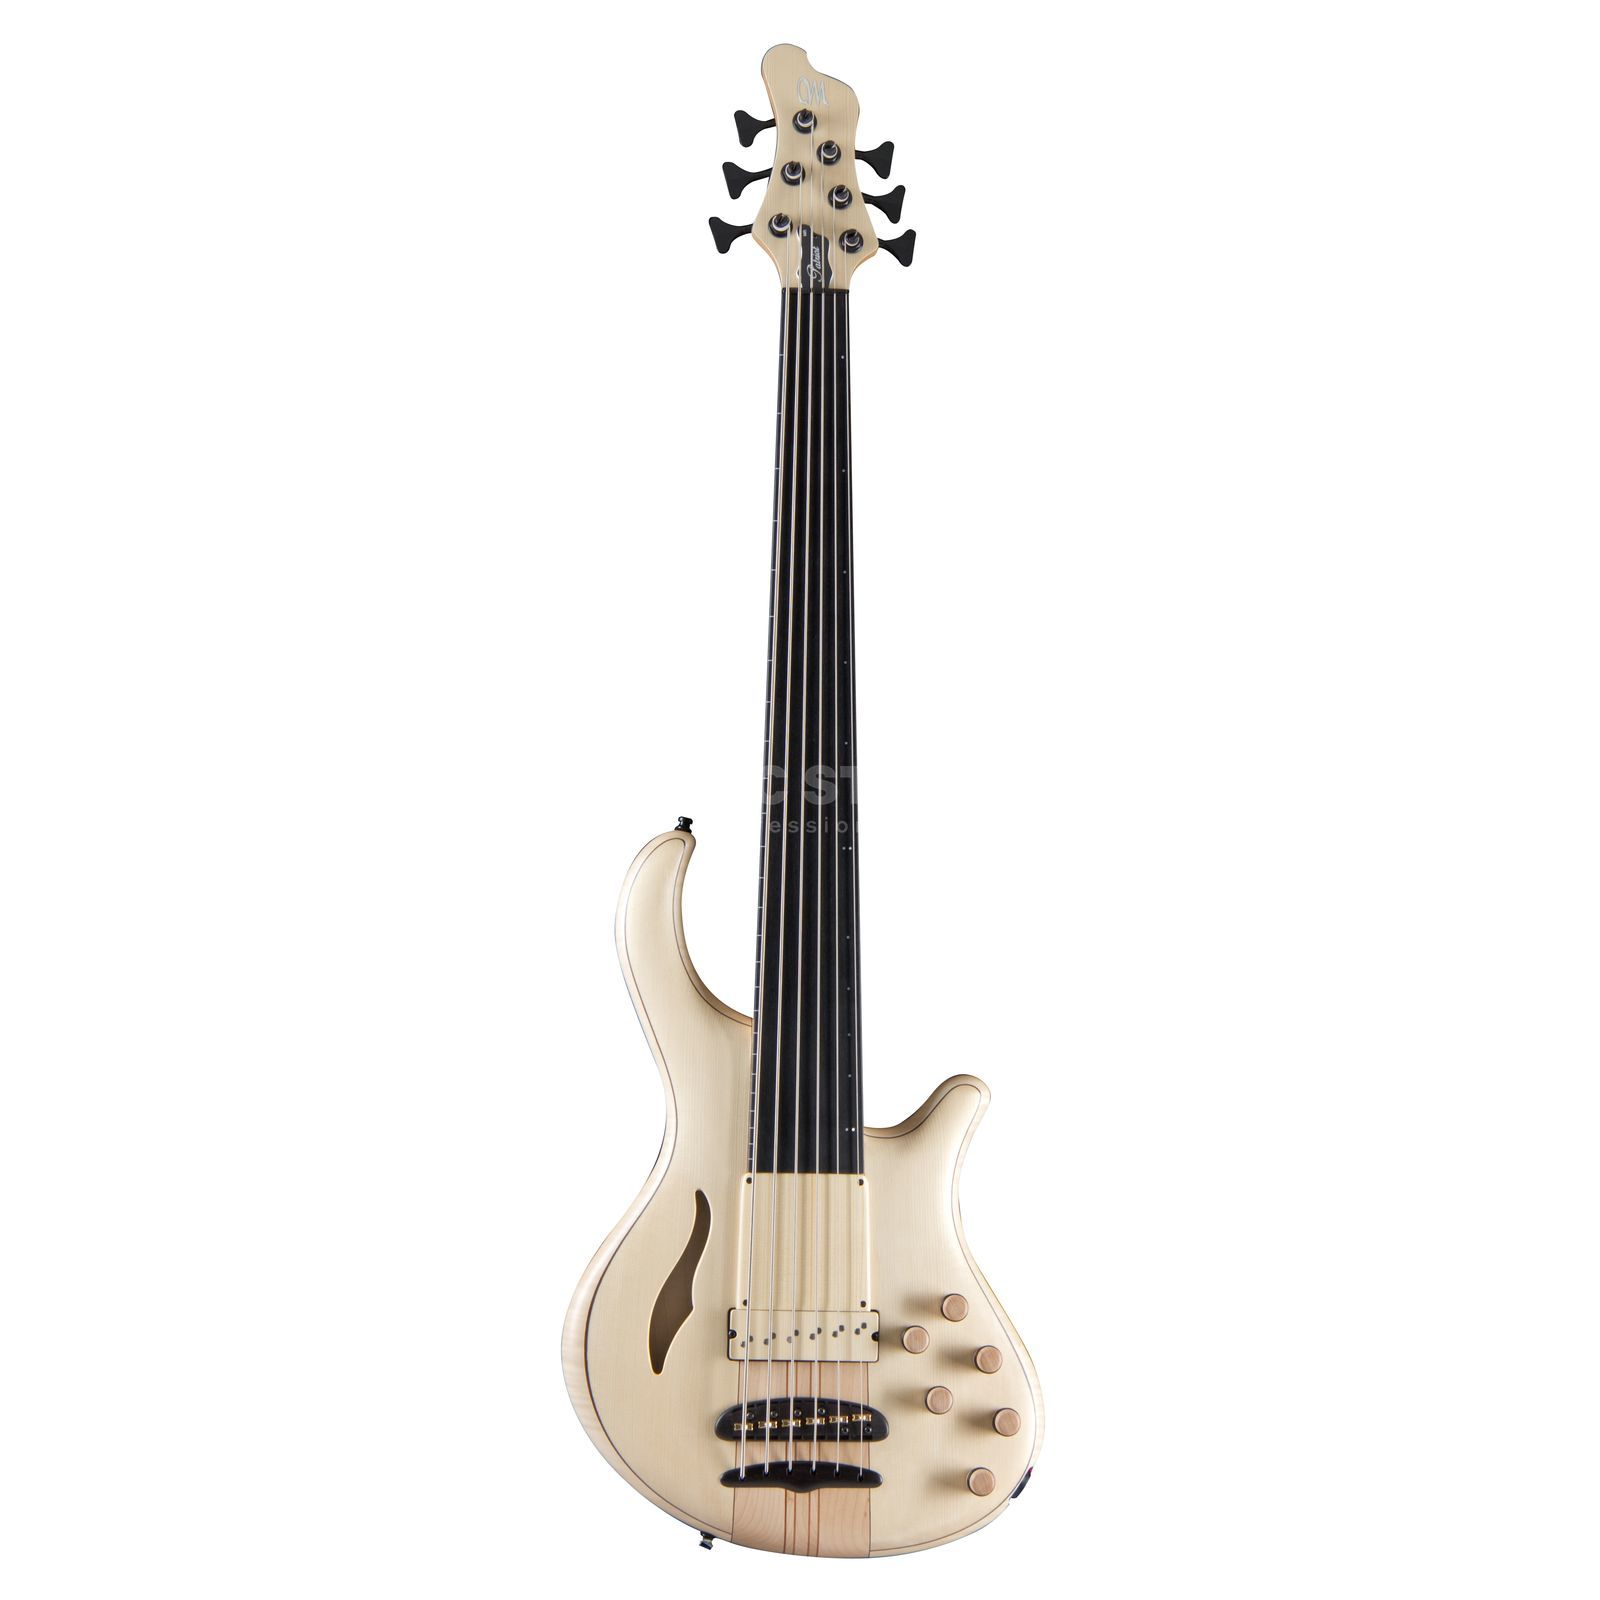 Mayones AS Patriot 6 MR Fretless NT CS Natural Image du produit